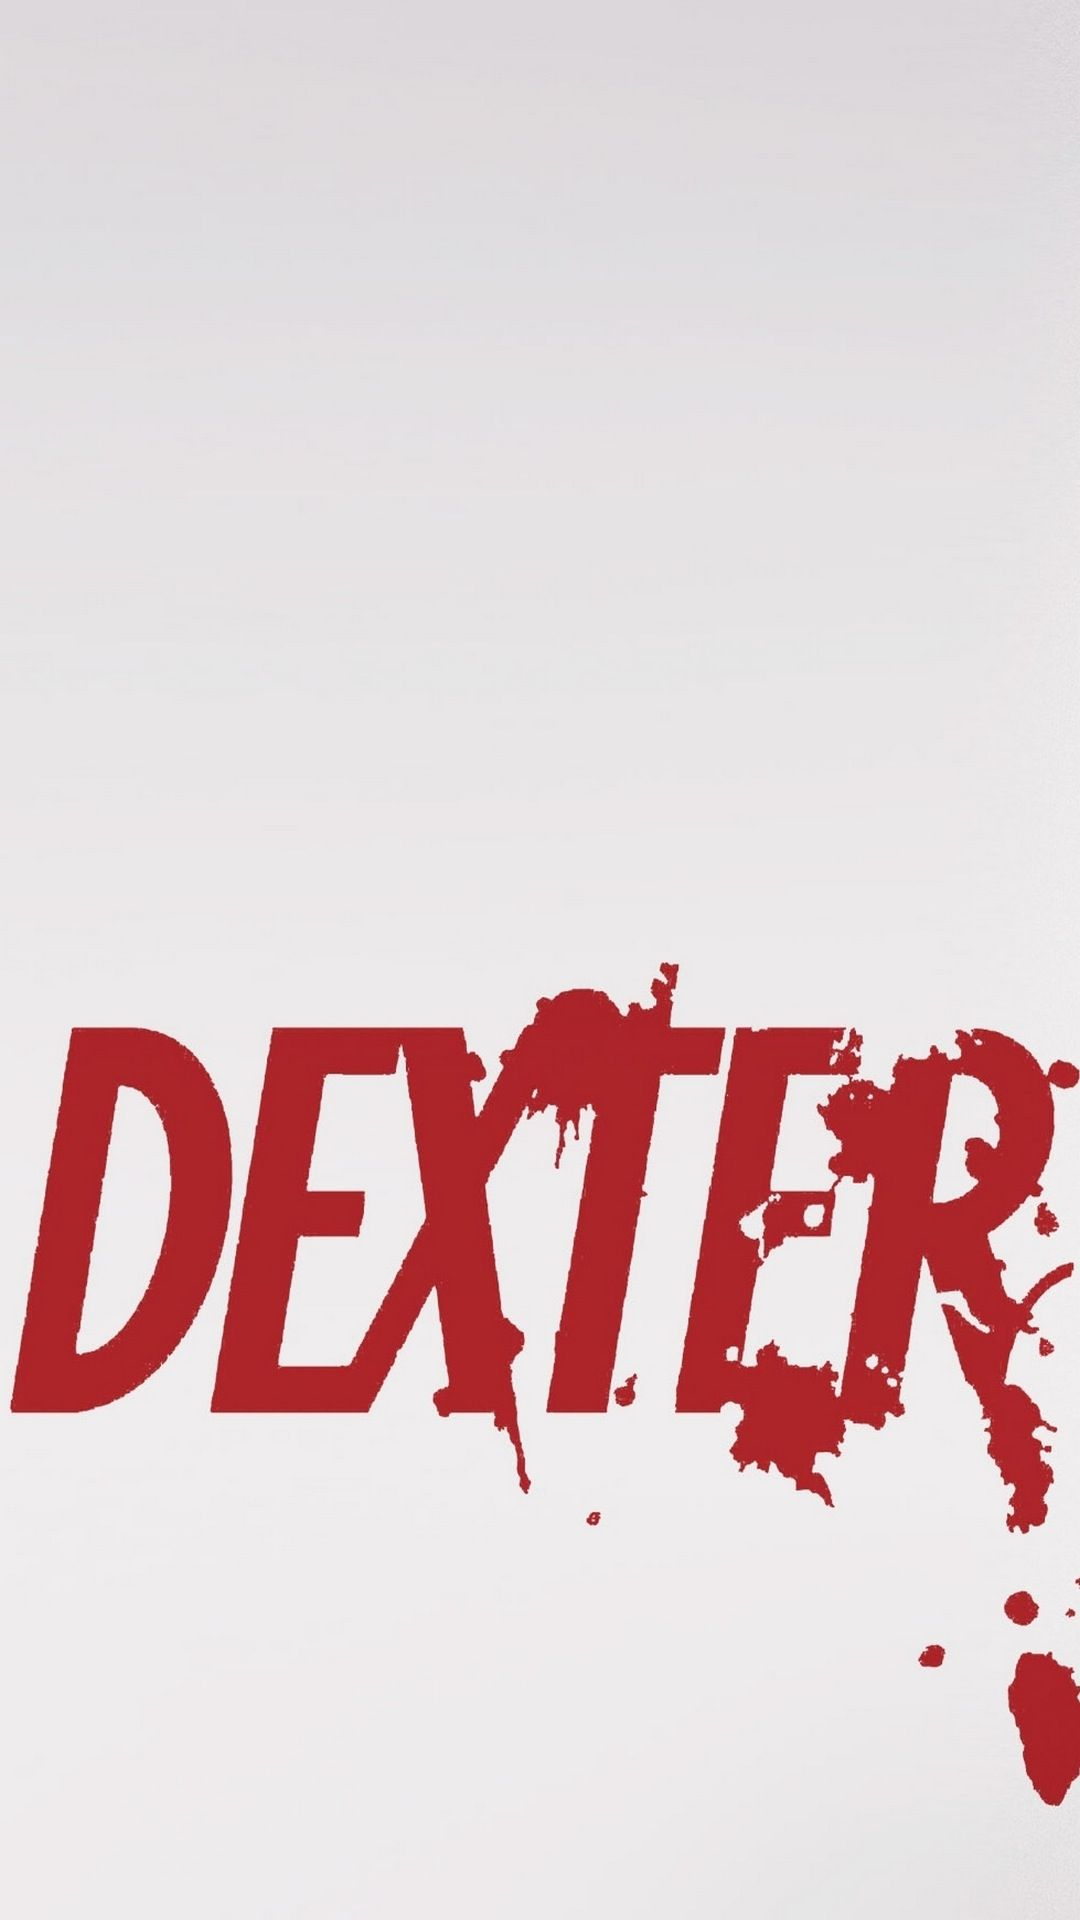 Dexter Series Logo Iphone 6 Plus Wallpaper Dexter Wallpaper Dexter Kawaii Background